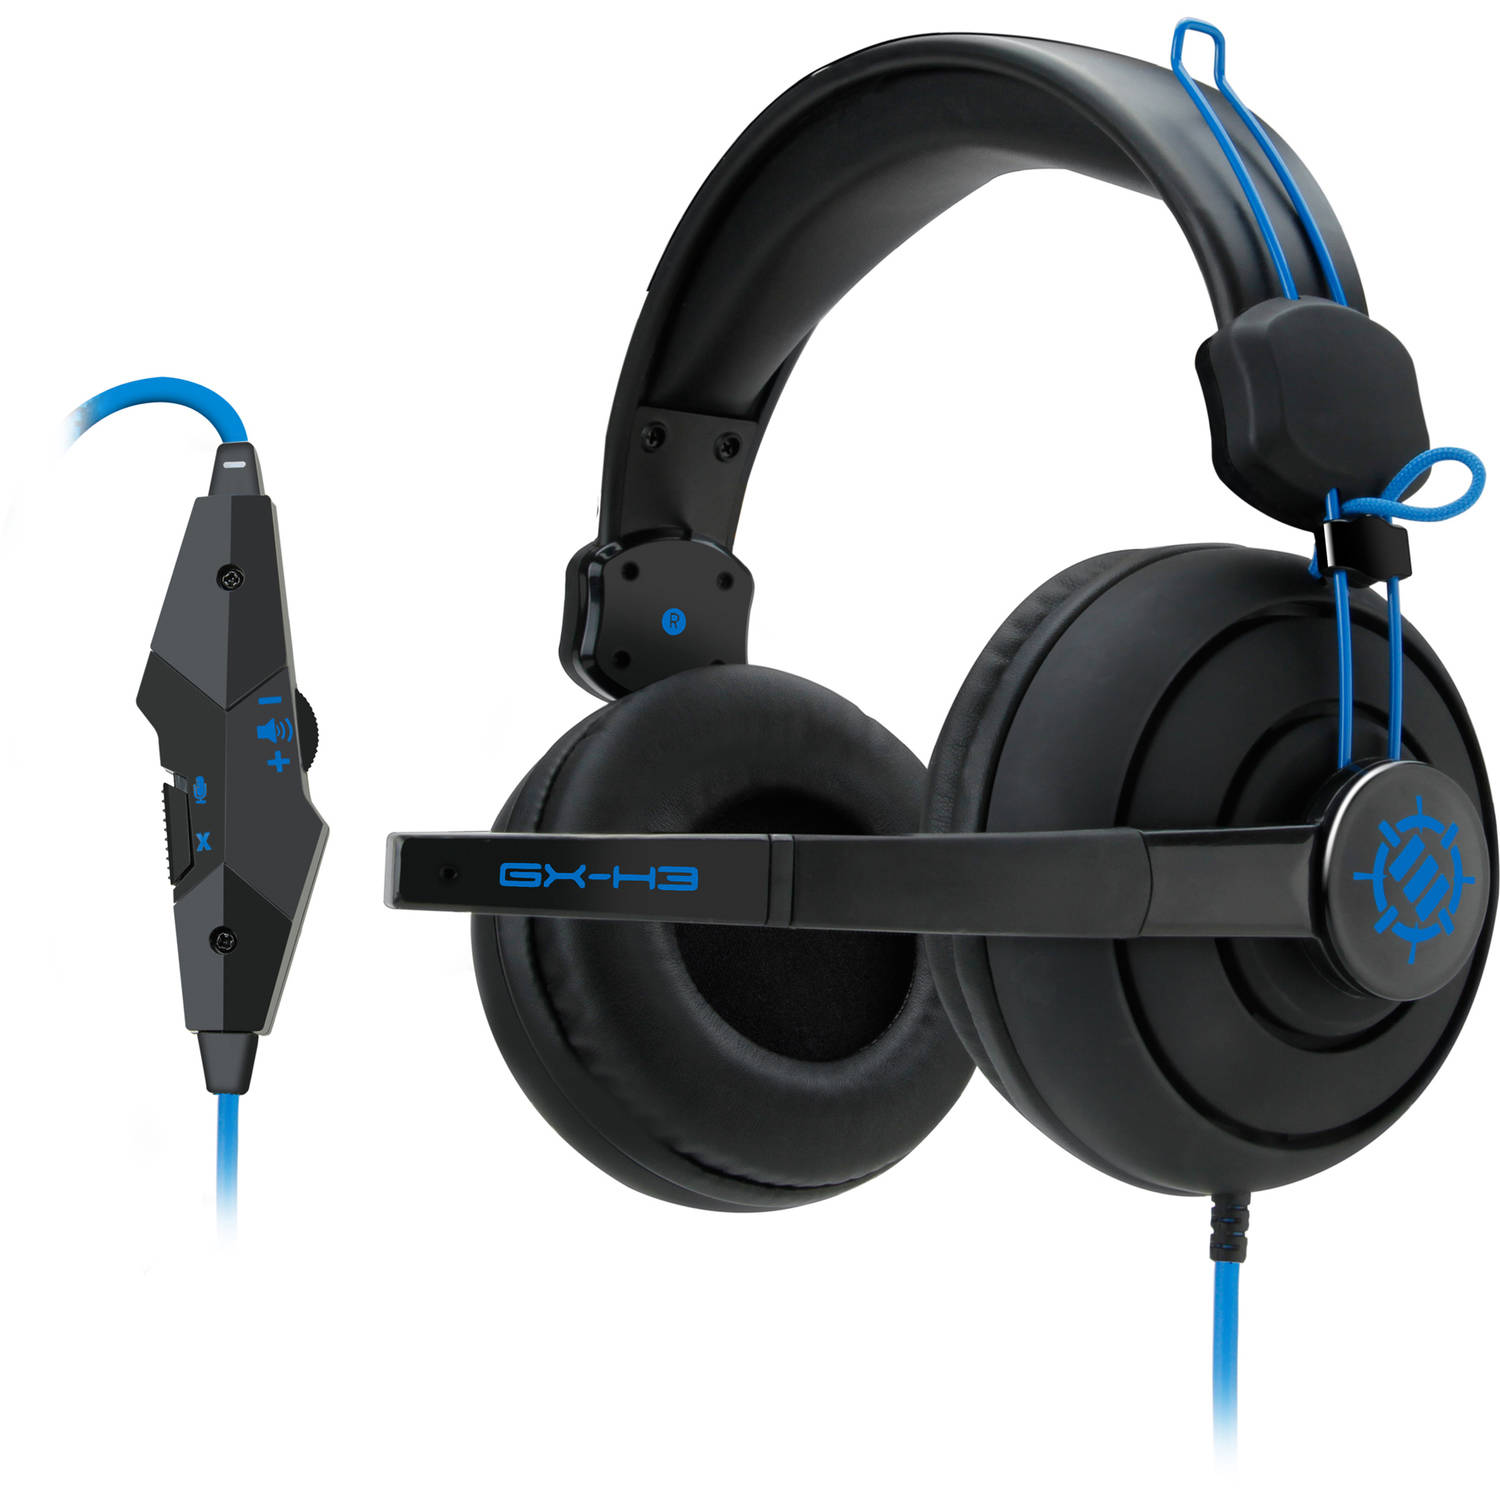 ENHANCE GX-H3 Stereo Gaming Headset with Over-Ear Headphones , Adjustable Mic & In-Line Volume Control - Works with PC Games